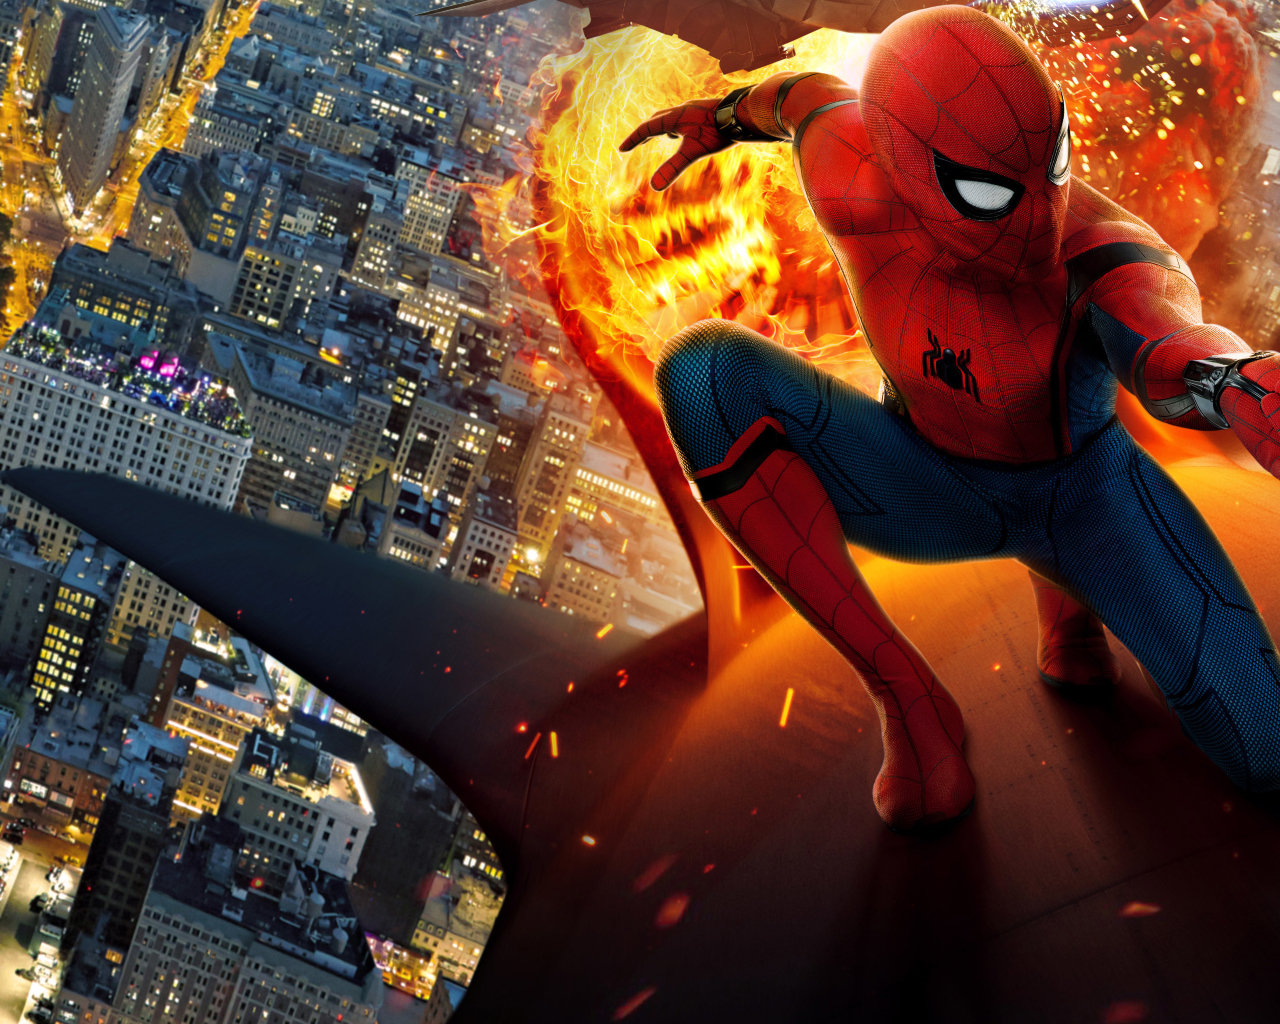 Movie Poster 2019: Spiderman Homecoming New Movie Poster Chinese, HD 4K Wallpaper